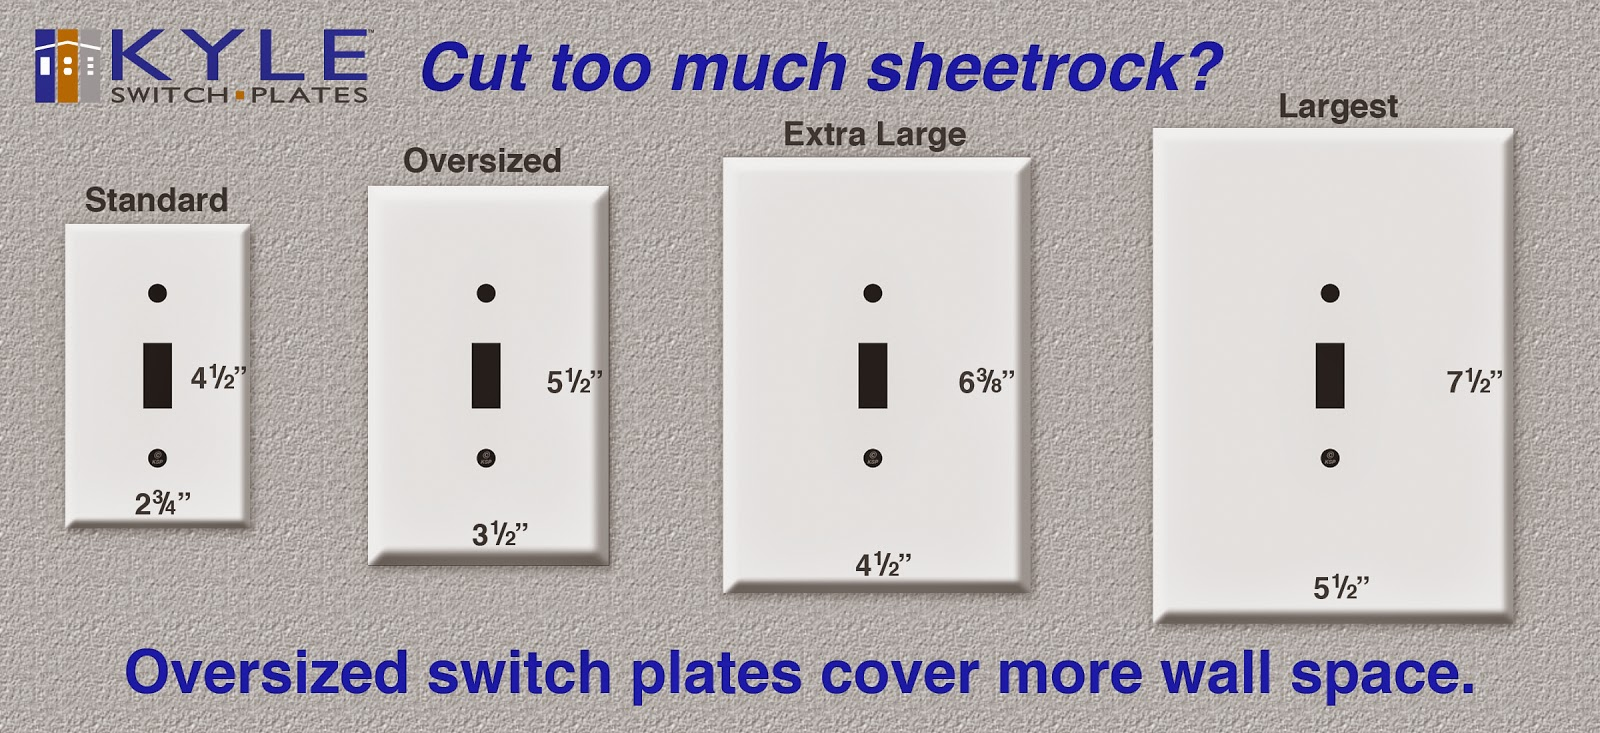 Oversized Switch Plate Covers Inspiration Kyle Switch Plates May 2014 Design Inspiration